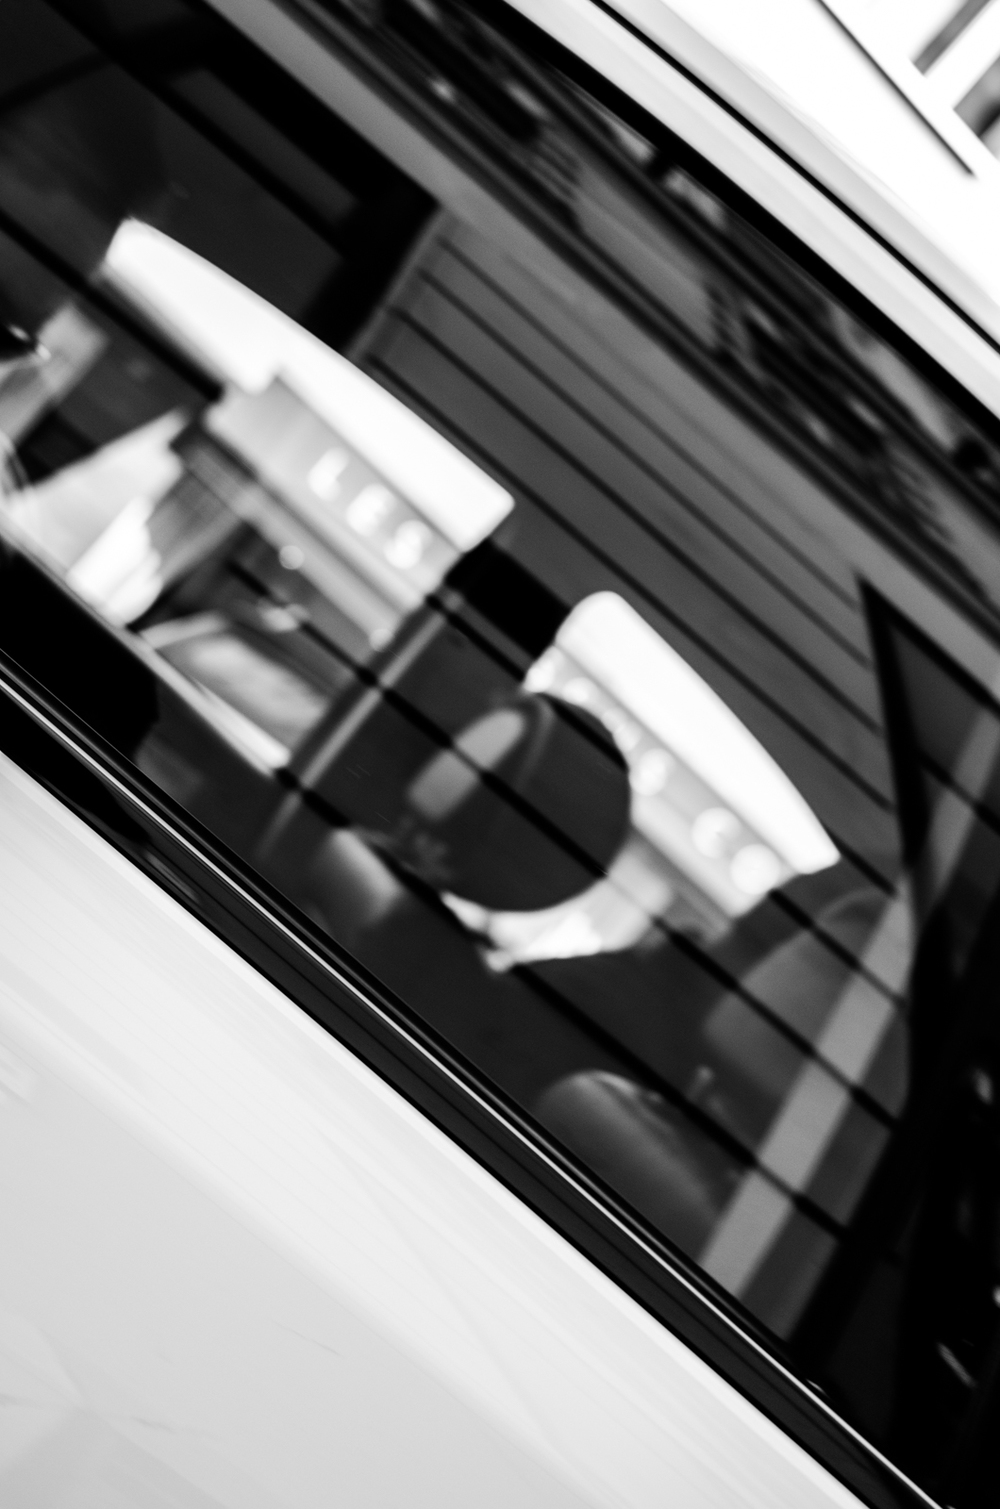 Project 365: #177 - Urban reflections